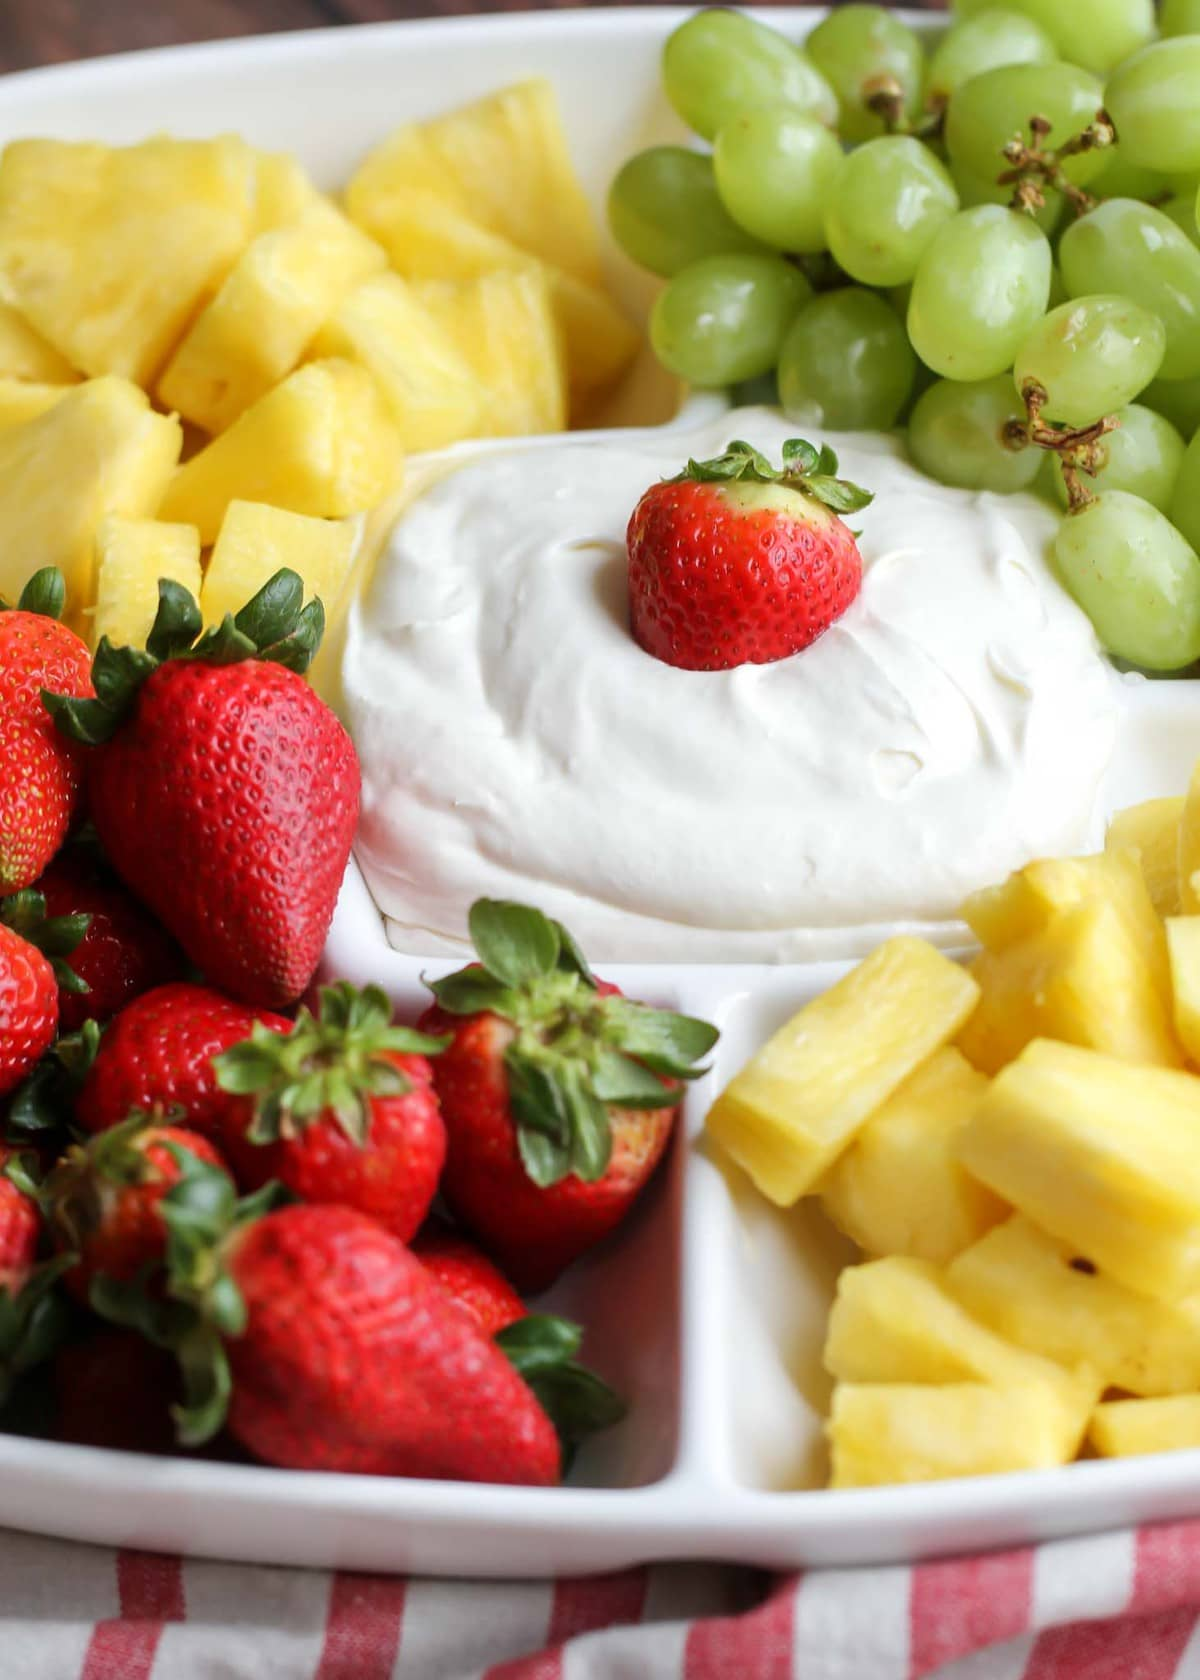 Cream Cheese Fruit Dip in white platter with strawberries, pineapple and green grapes around it